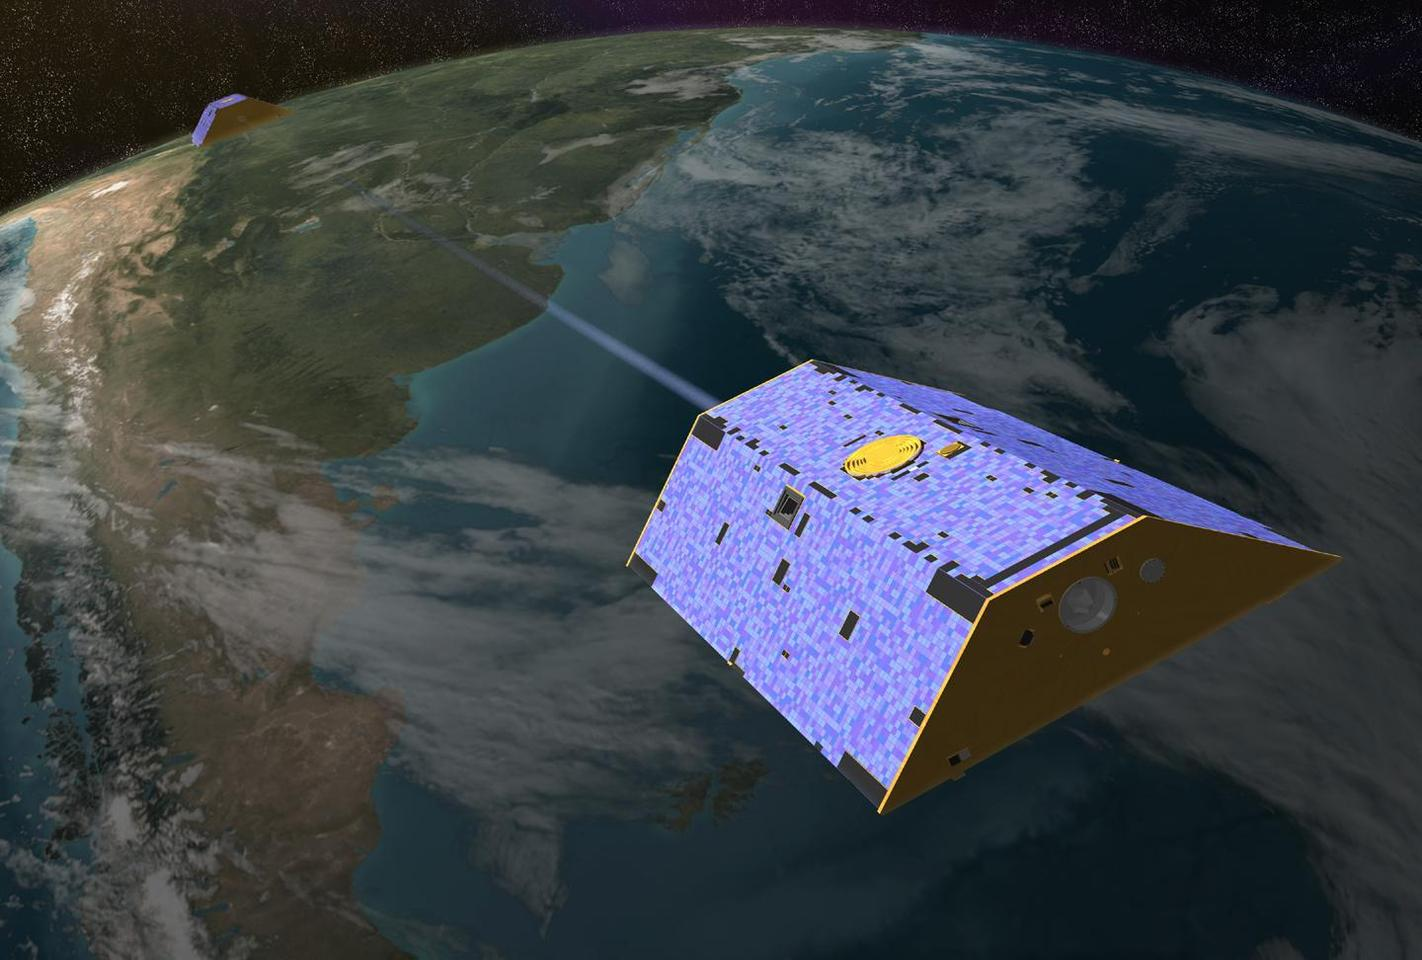 Artist's concept of the twin Gravity Recovery and Climate Experiment (GRACE) satellites in orbit